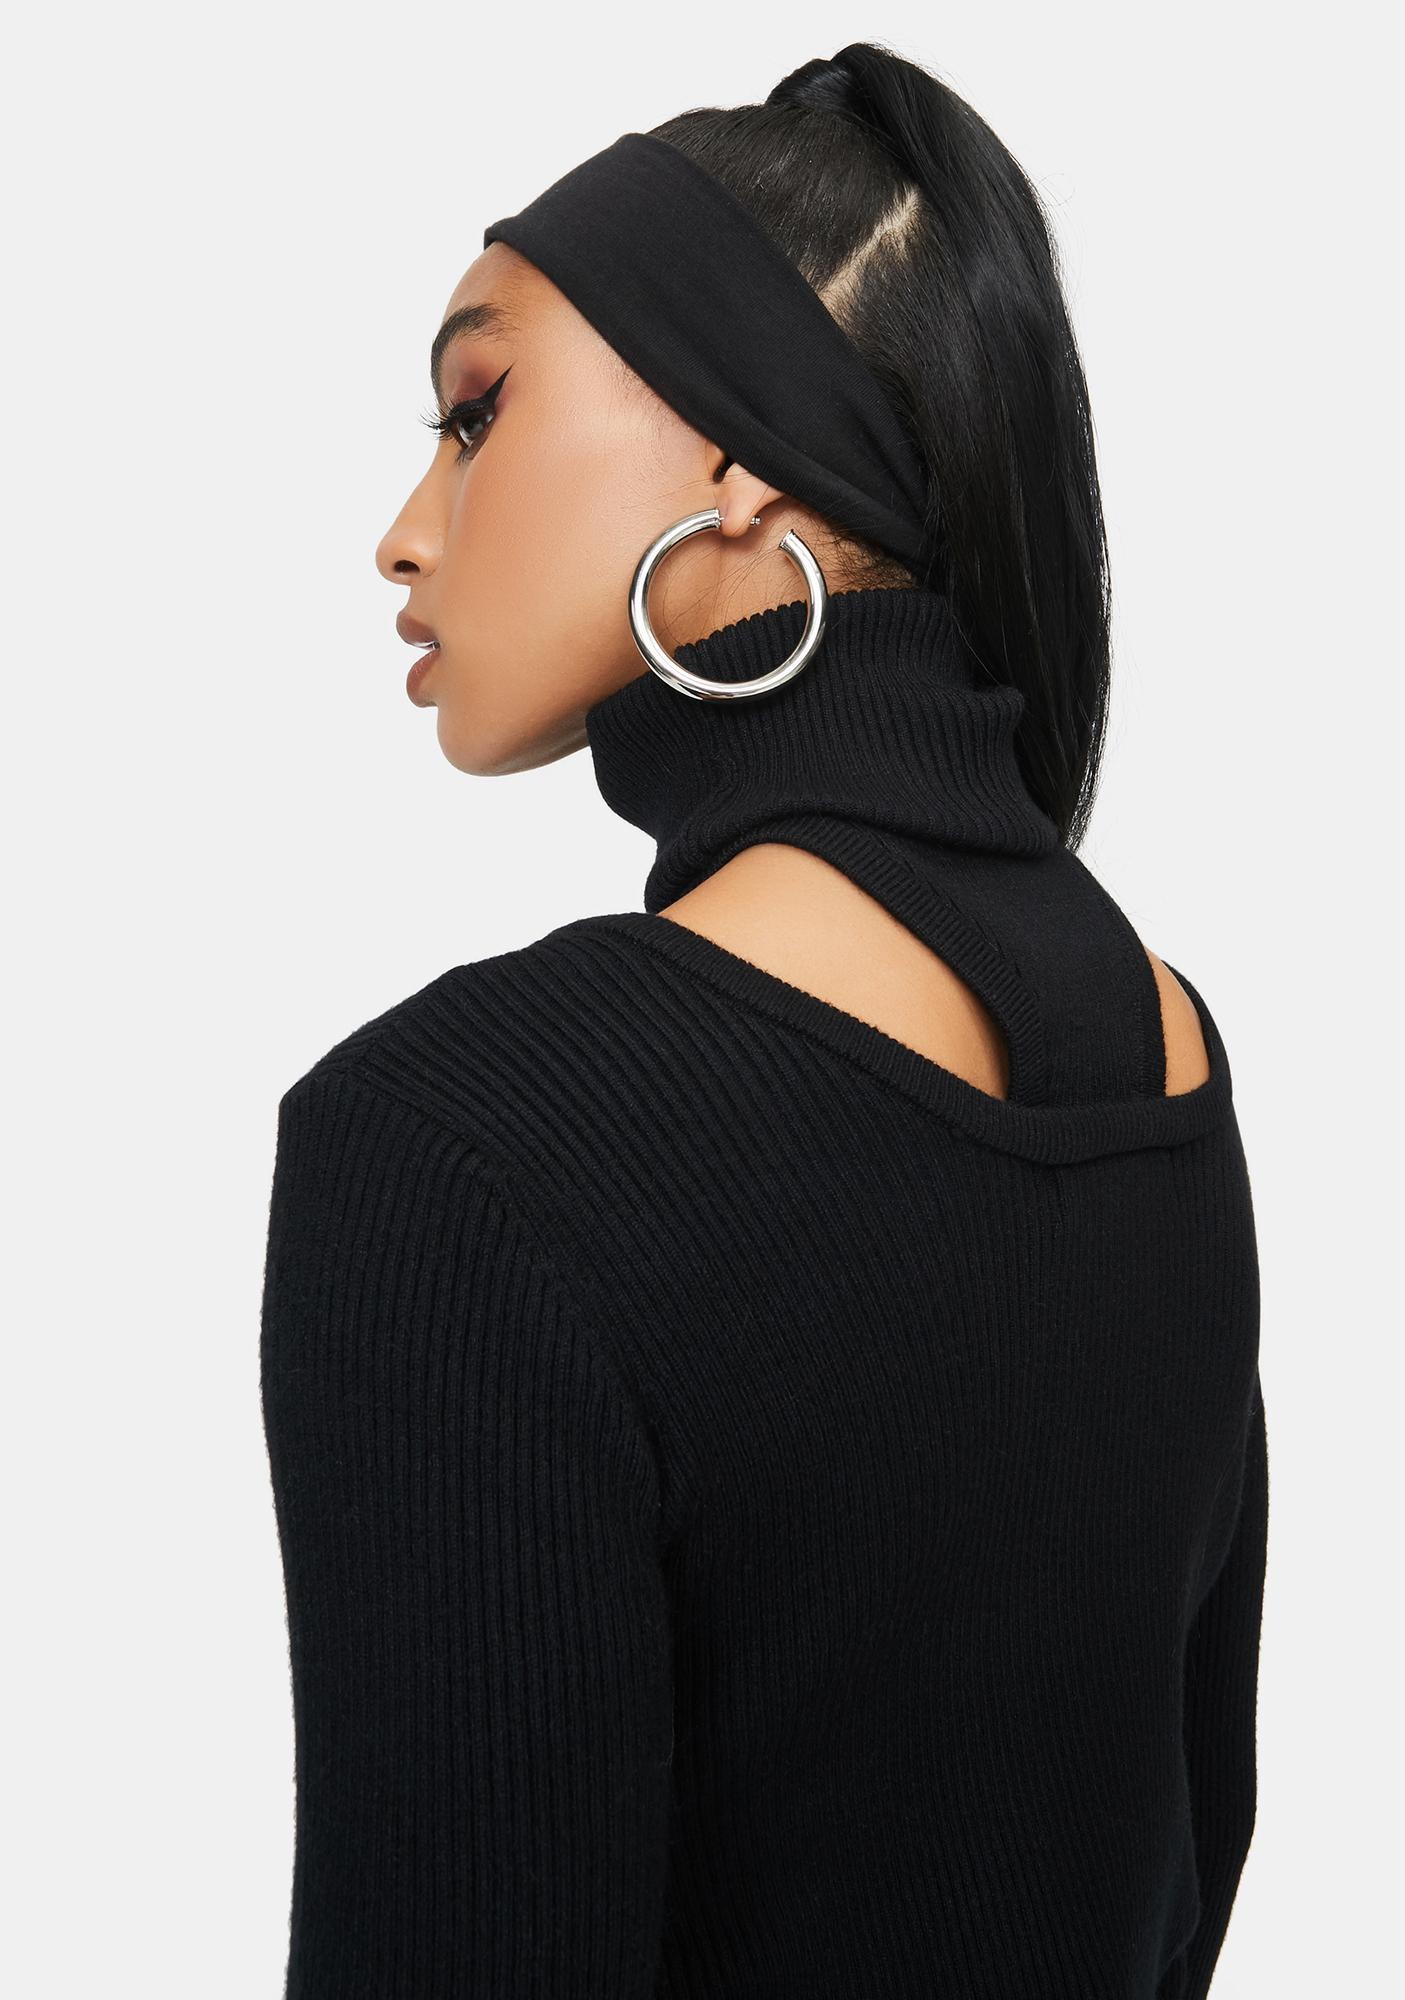 THE KRIPT Black Safety Mask Sweater